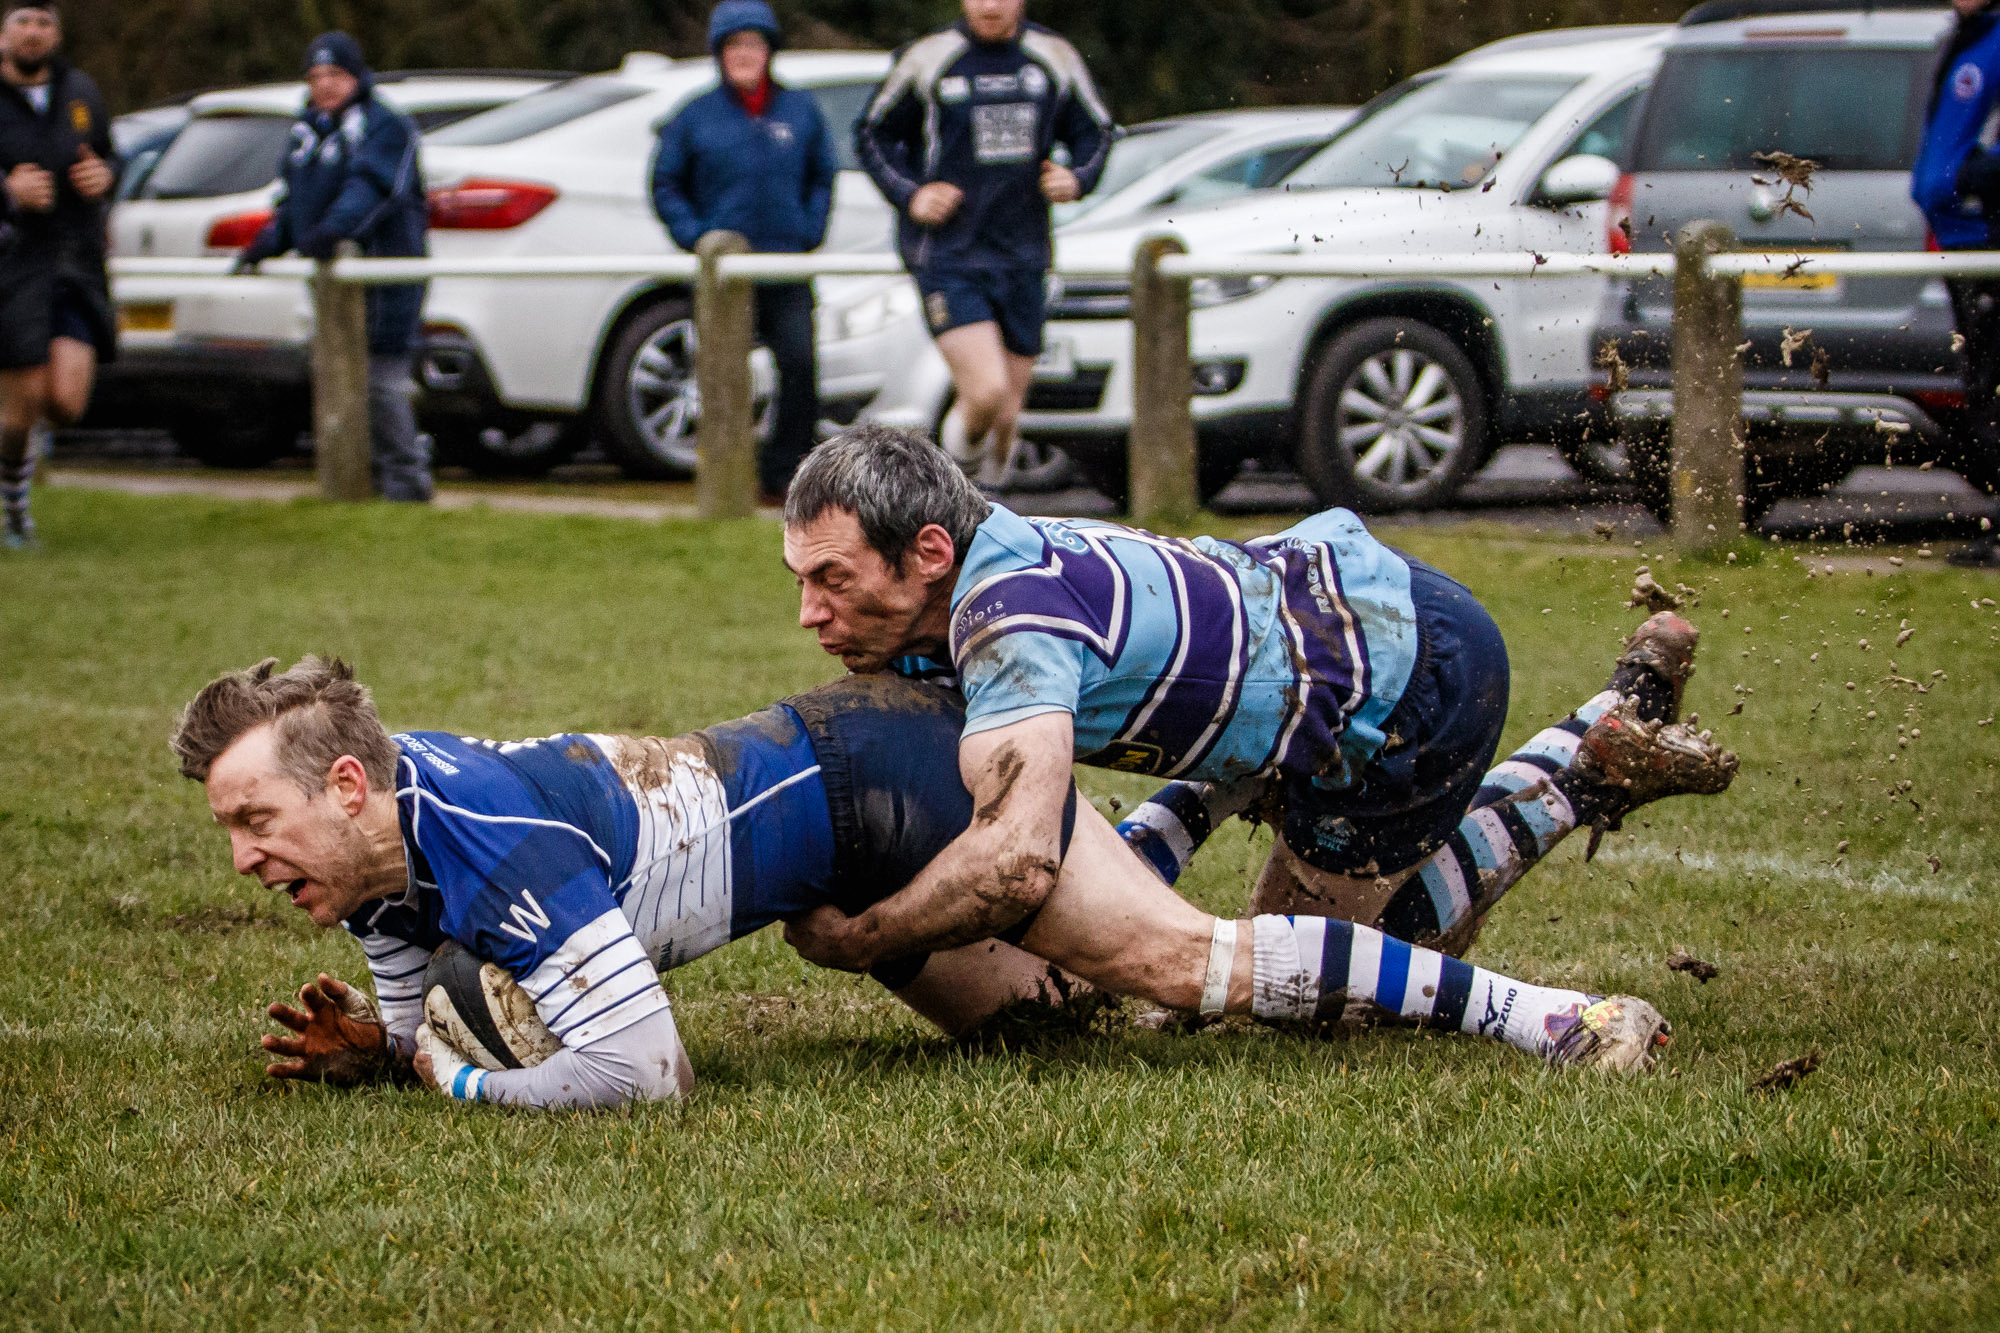 Pontefract's first try after Ripon had built a healthy lead